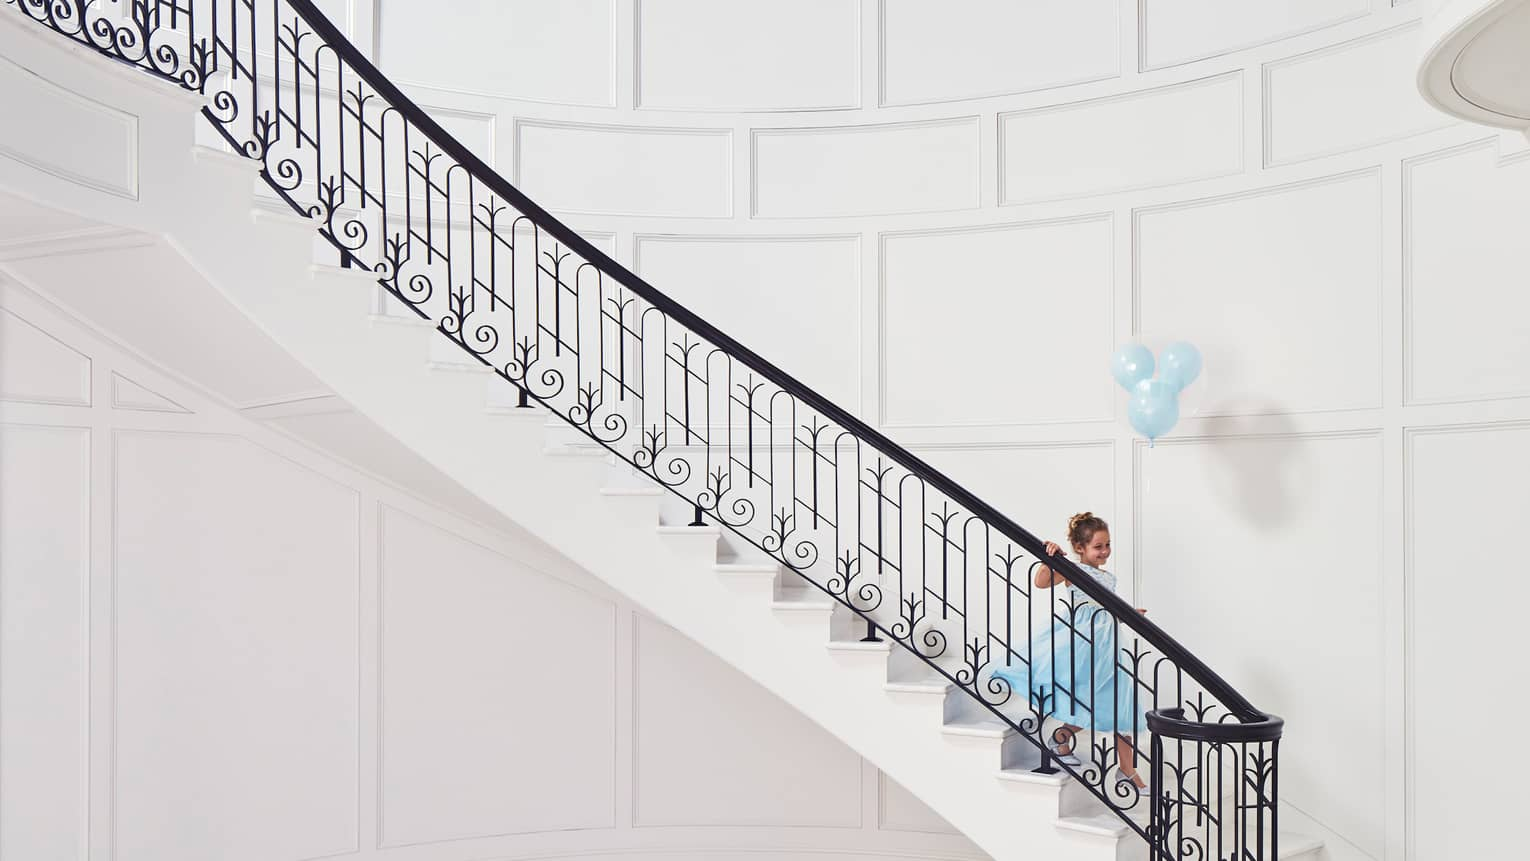 Child wearing blue gown with blue balloons walks down elegant white staircase with black iron railing